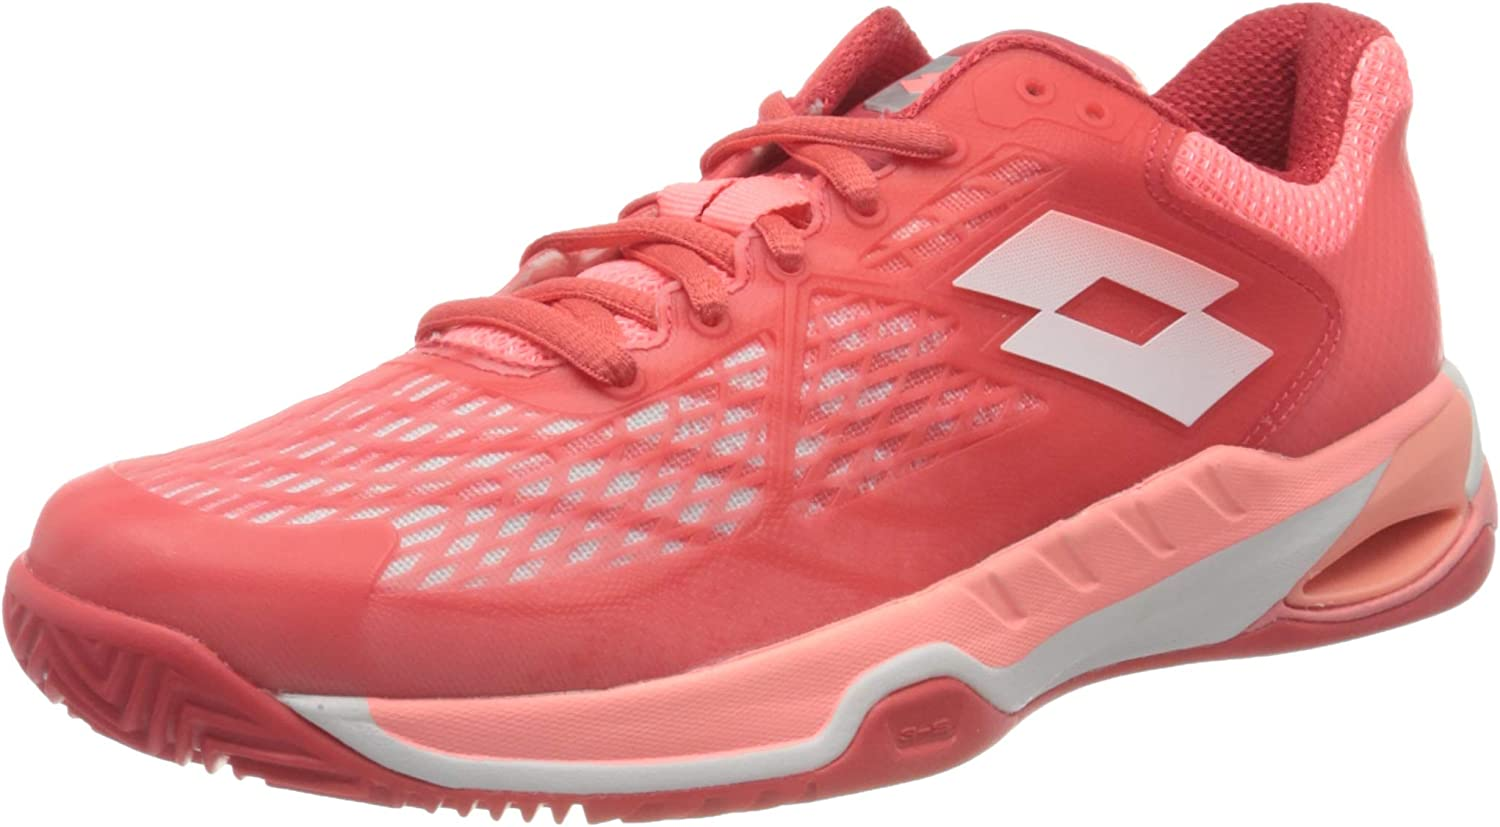 Lotto Women's Tennis Super-cheap low-pricing Shoes